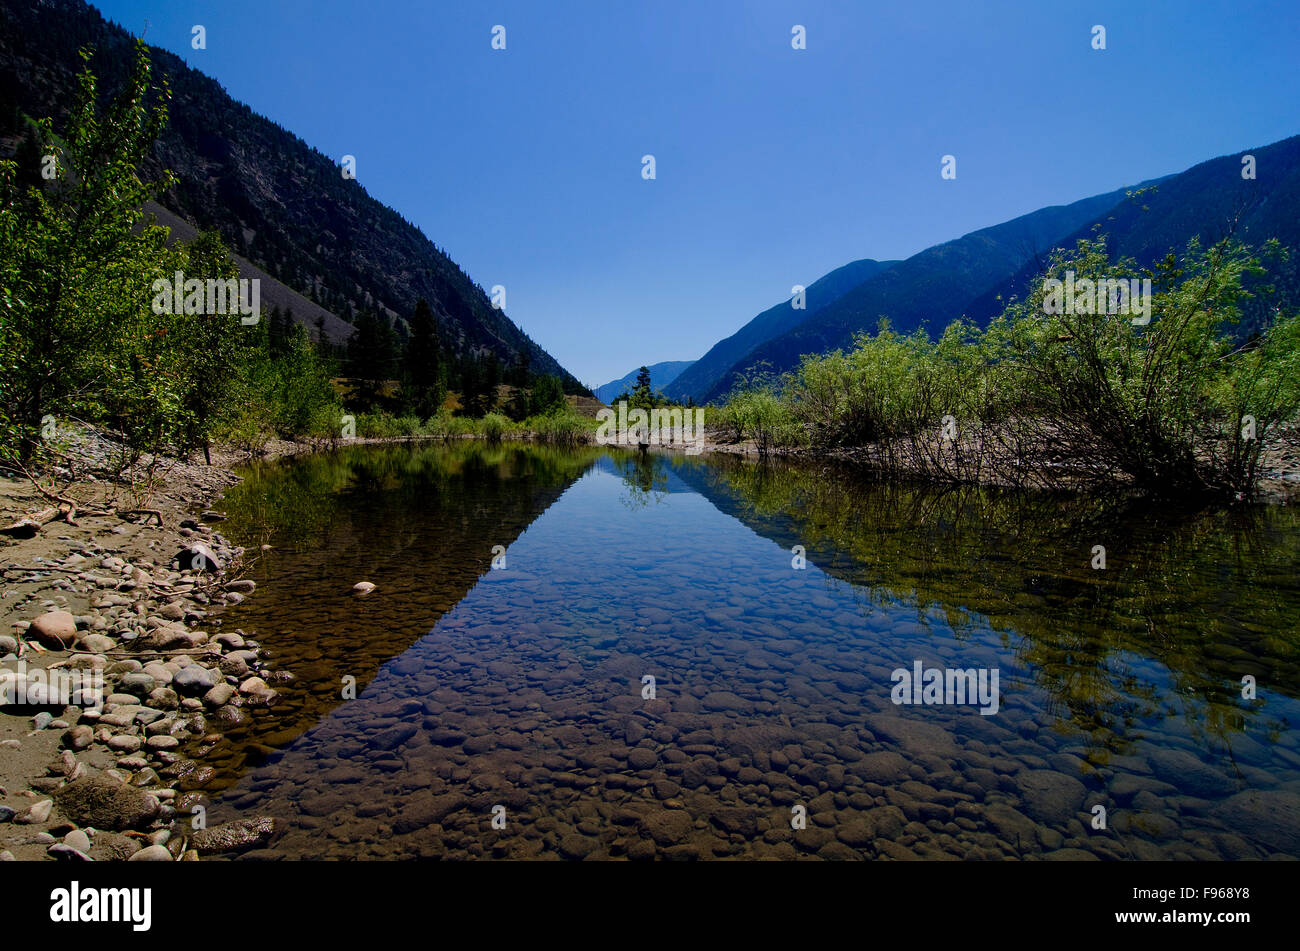 The shapes and curves of the rugged terrain along the Similkameen River, near Keremeos, in the Simikameen region - Stock Image